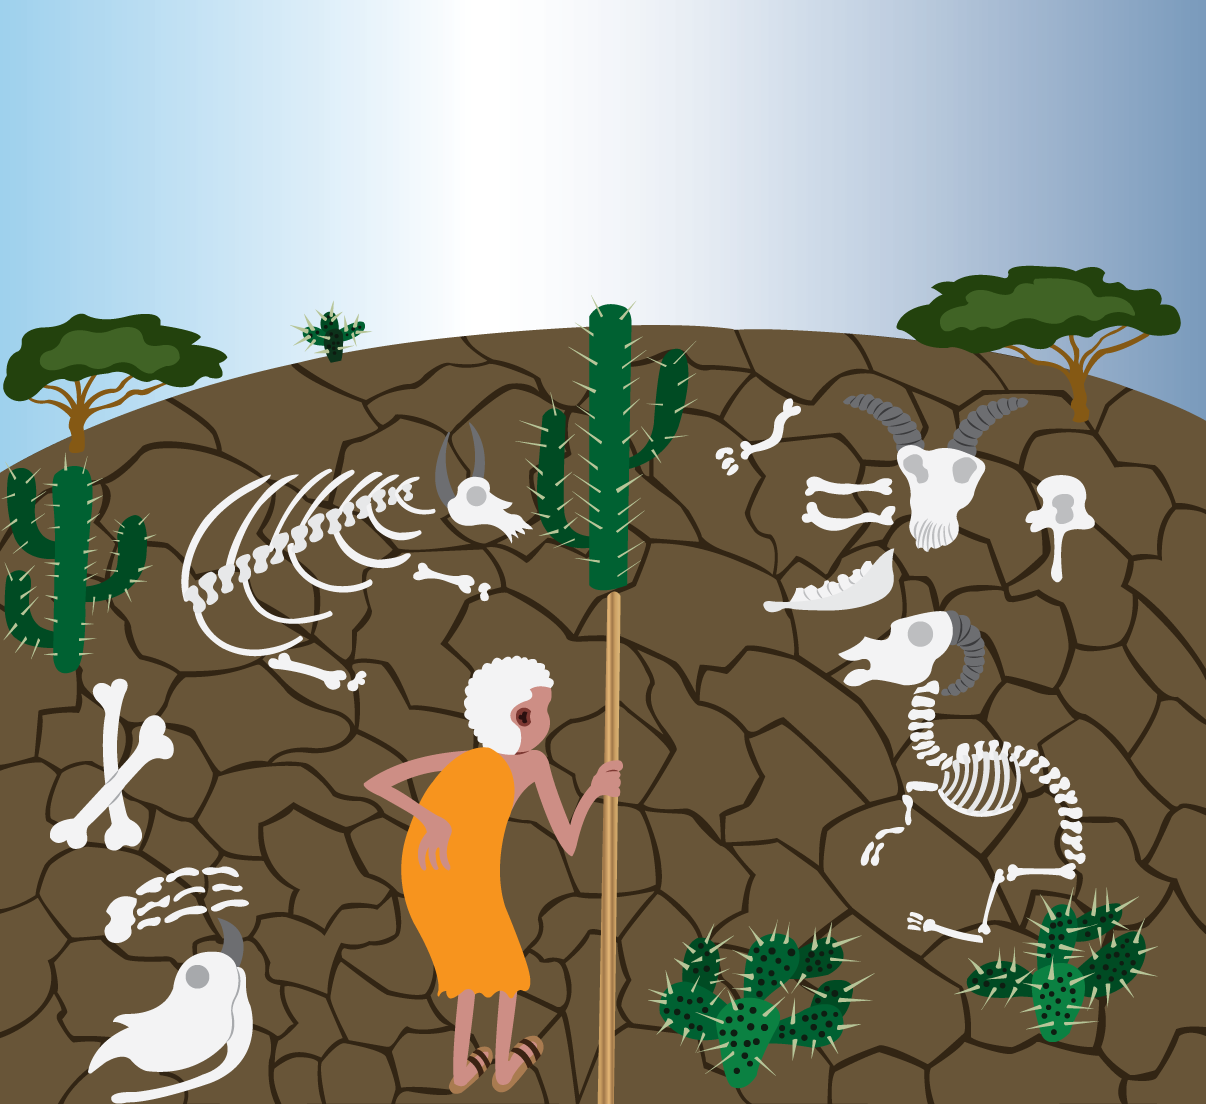 Vector Issue #6596: The year of the great drought-An elderly man standing next to landscape devastated by drought